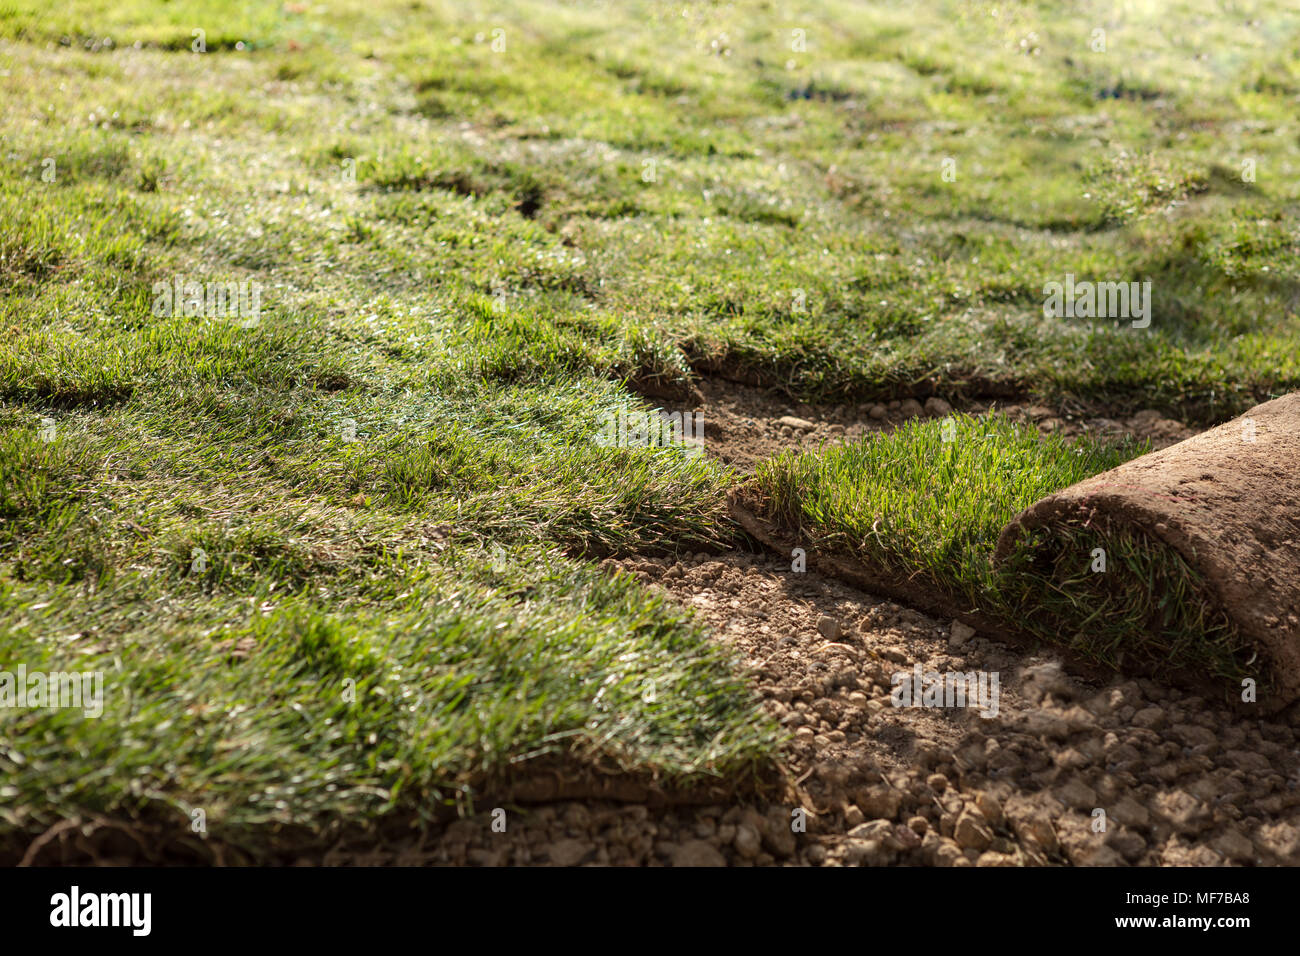 Natural Grass Turf Professional Installer. Gardener Installing Natural Grass Turfs Creating Beautiful Lawn Field. - Stock Image